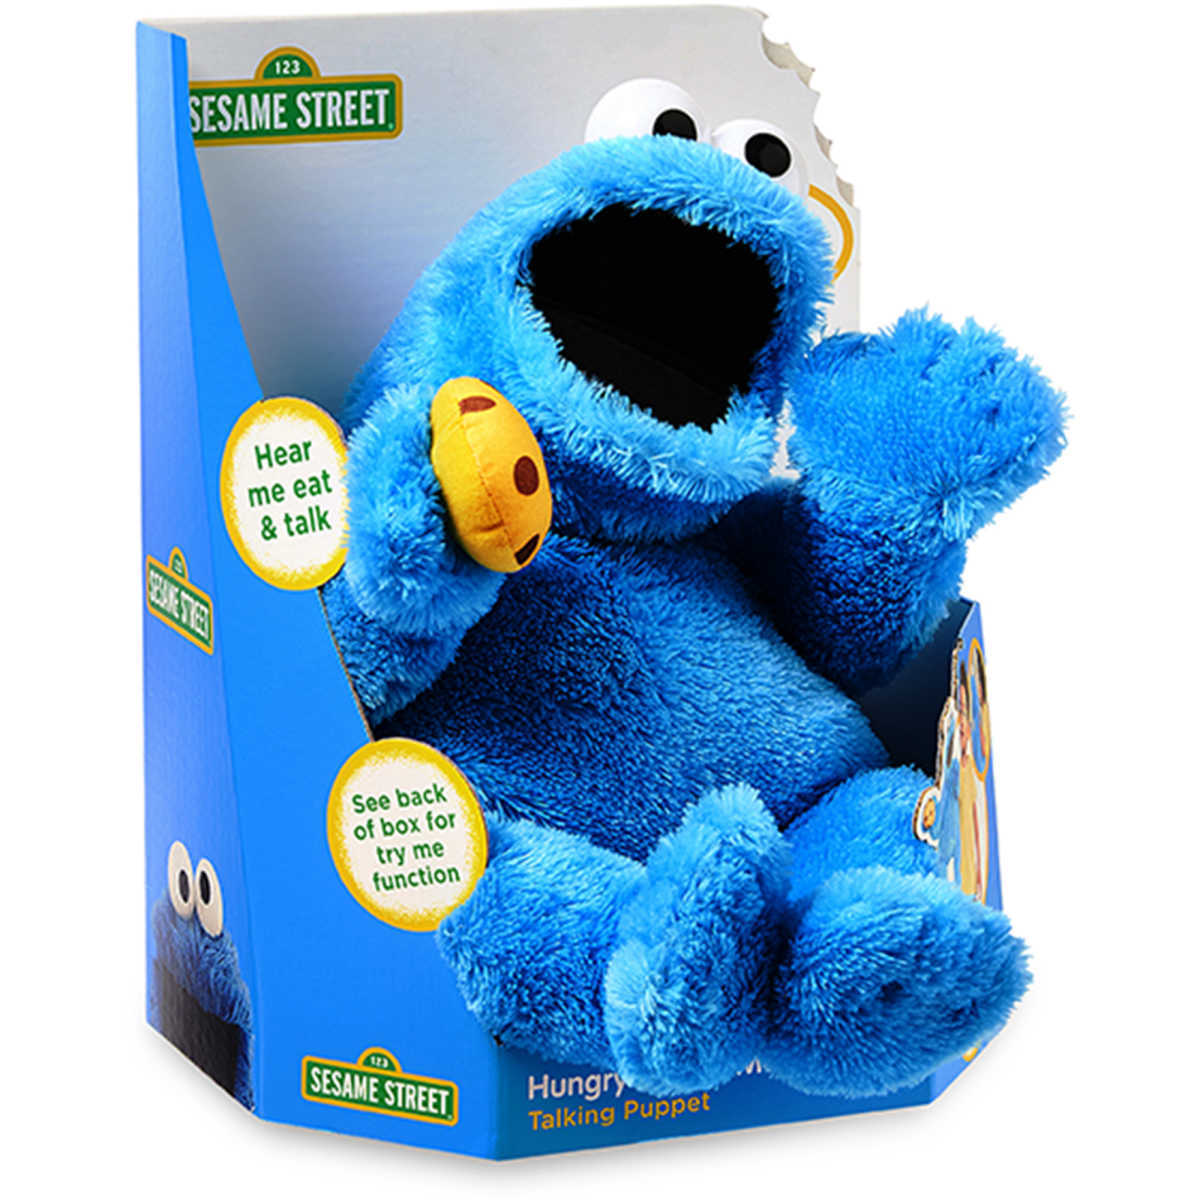 Details about Sesame Street Hungry Cookie Monster Talking Puppet With  15+Sounds Birthday Gift